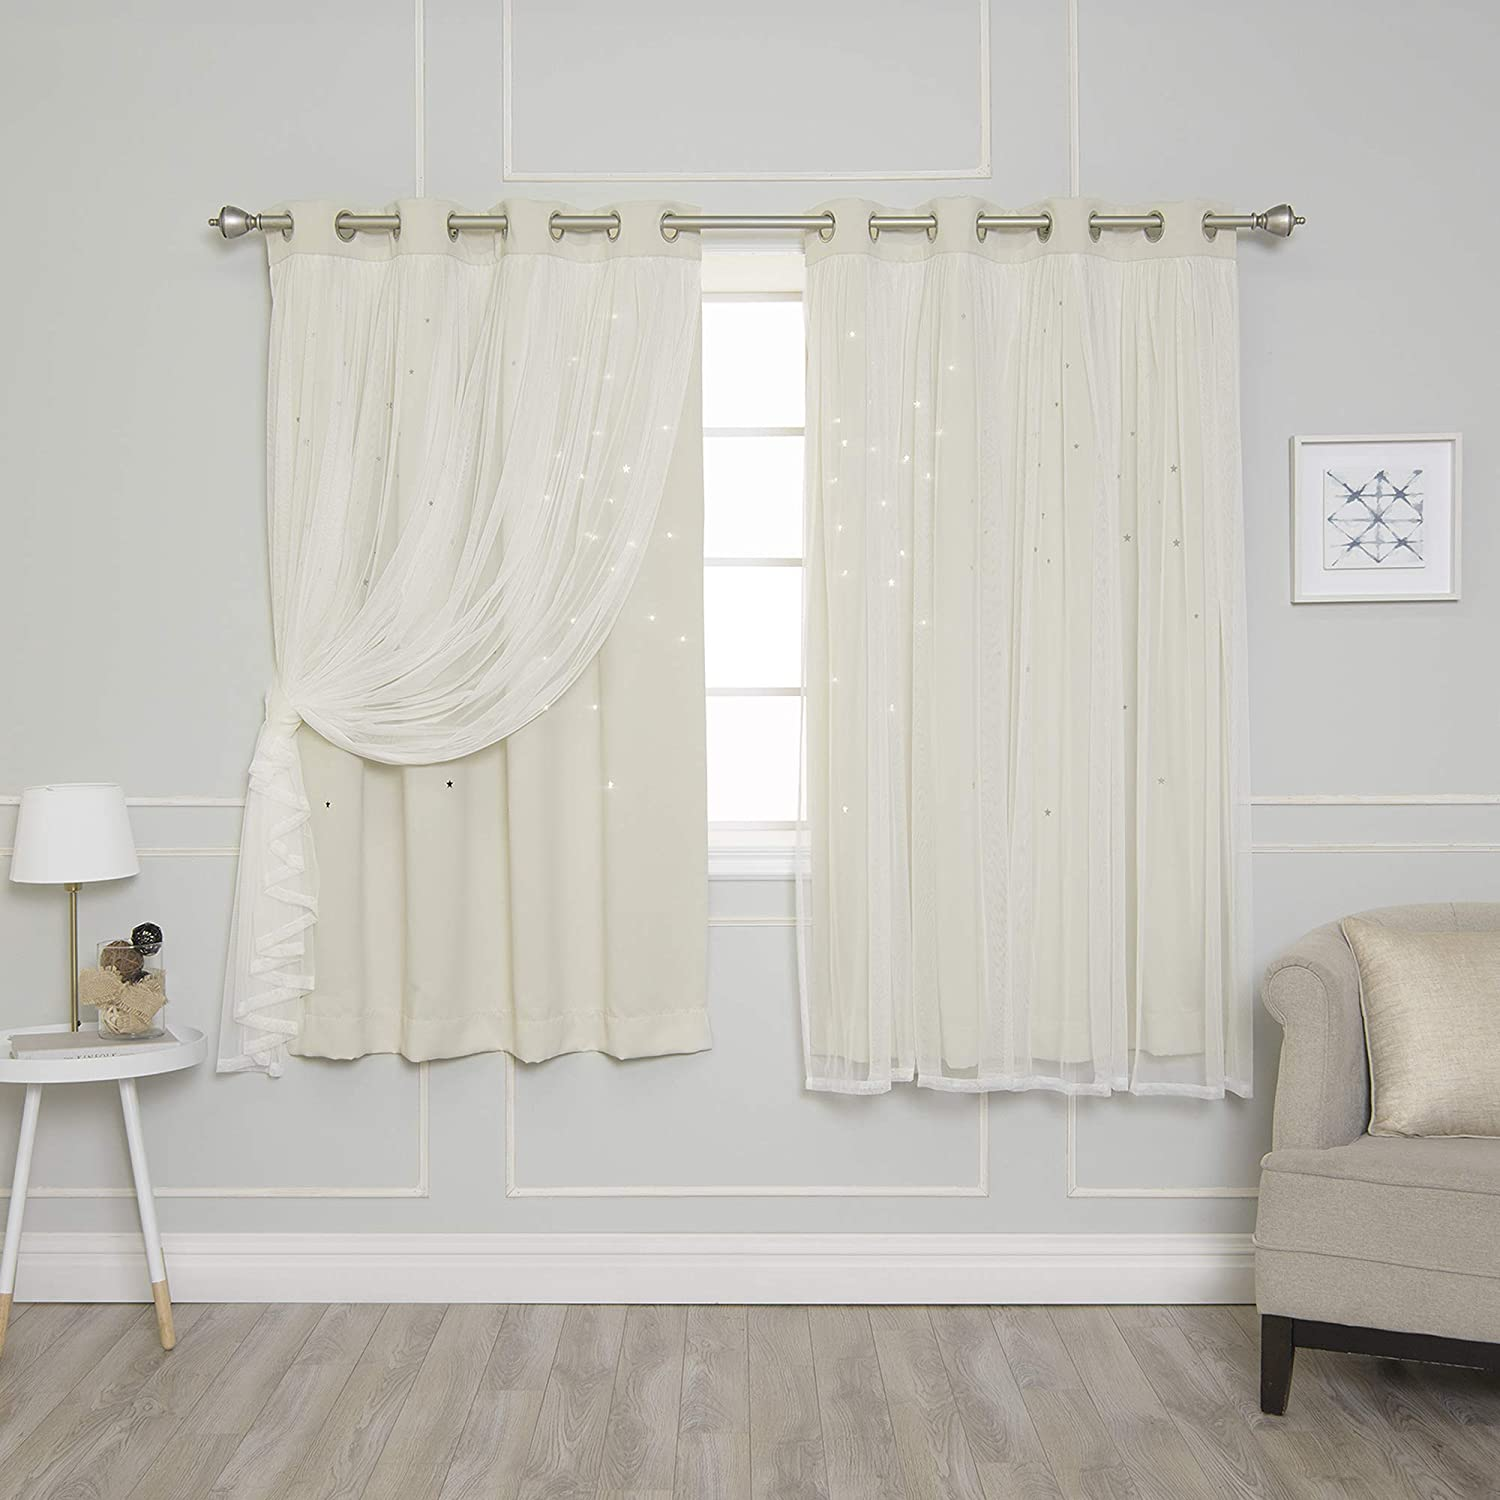 """Best Home Fashion Tulle Overlay Star Cut Out Blackout Curtains (52"""" W x 63"""" L, Biscuit)"""